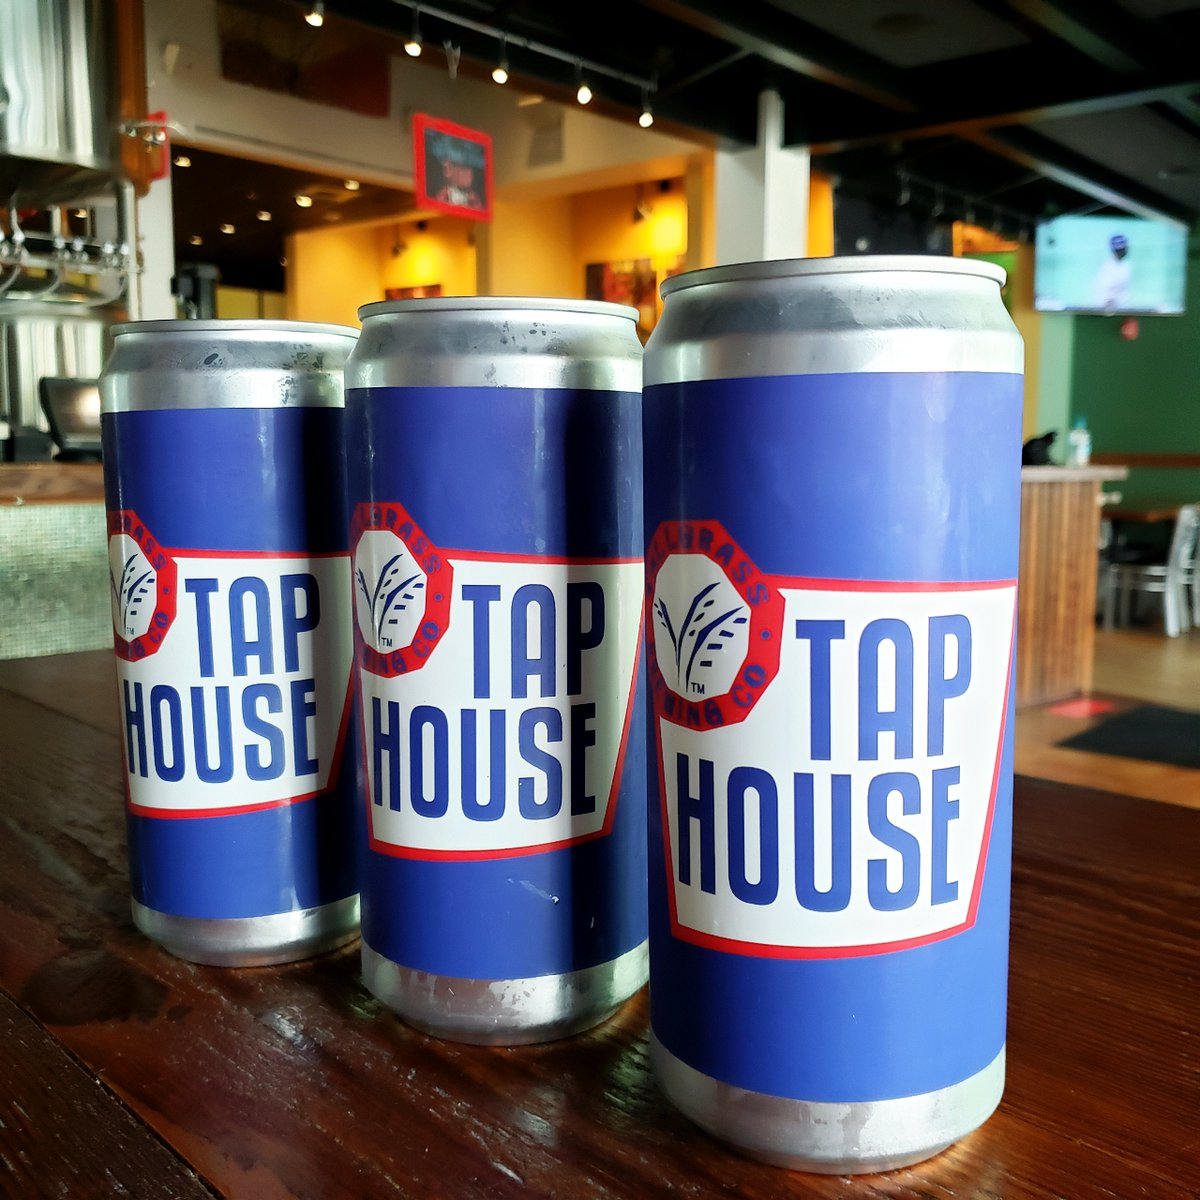 Wipe away your cold weather blues by picking up a crowler or two! Crowlers are $5 ALL DAY!!!  #TapHouse #DowntownMHK #CraftBeer #DrinkLocal #Brewery #TapHouseToGo #Crowlers #ManhattanKS #DrinkMHK #MHKBeer #KansasBeer #5DollaHolla #Cheers https://t.co/rEQSnDbhRY